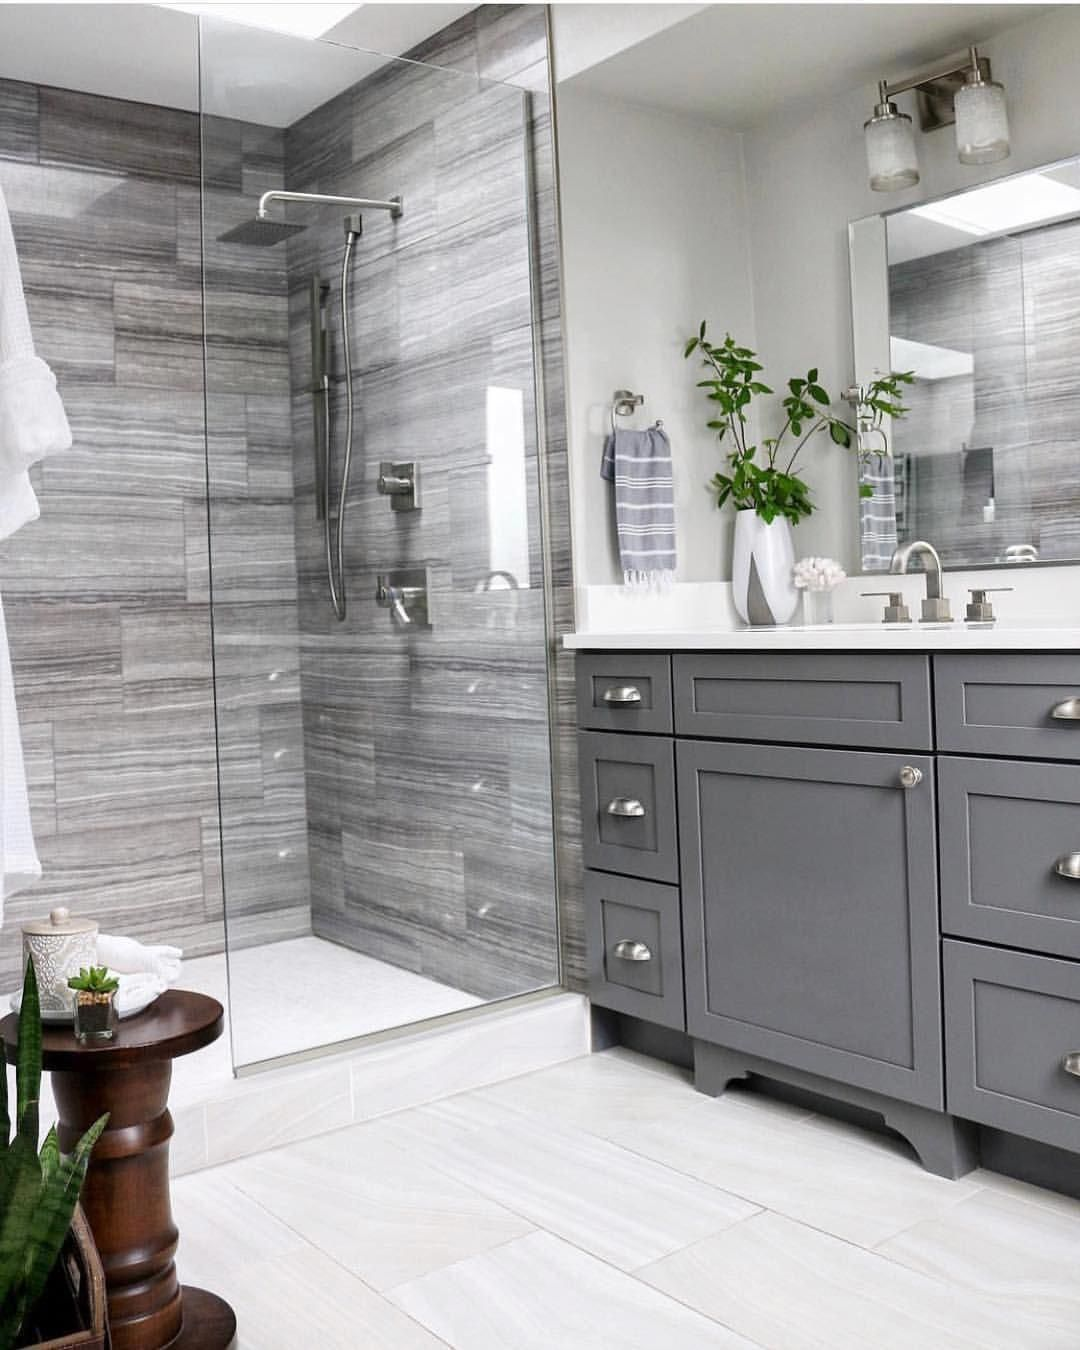 There Are A Range Of Methods You Can Include Or Improve Storage Spaces In Your Bathroom For One You In 2020 Restroom Remodel Bathrooms Remodel Small Bathroom Remodel